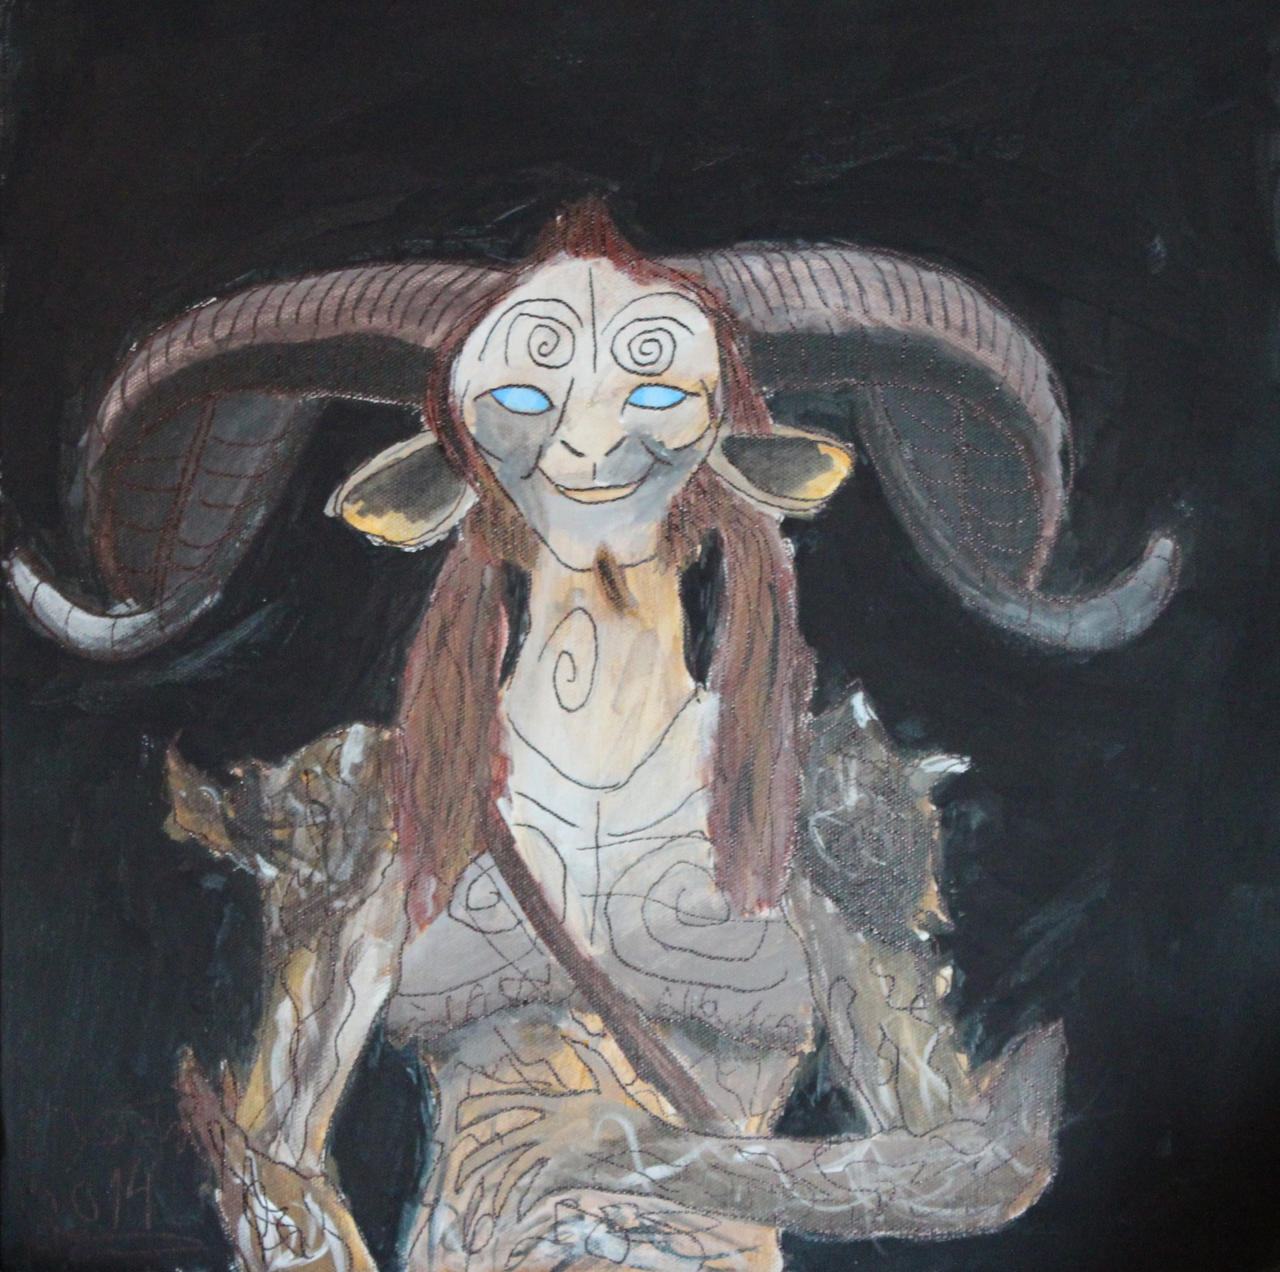 Faun from Pans Labyrinth by EysteinKN on DeviantArt